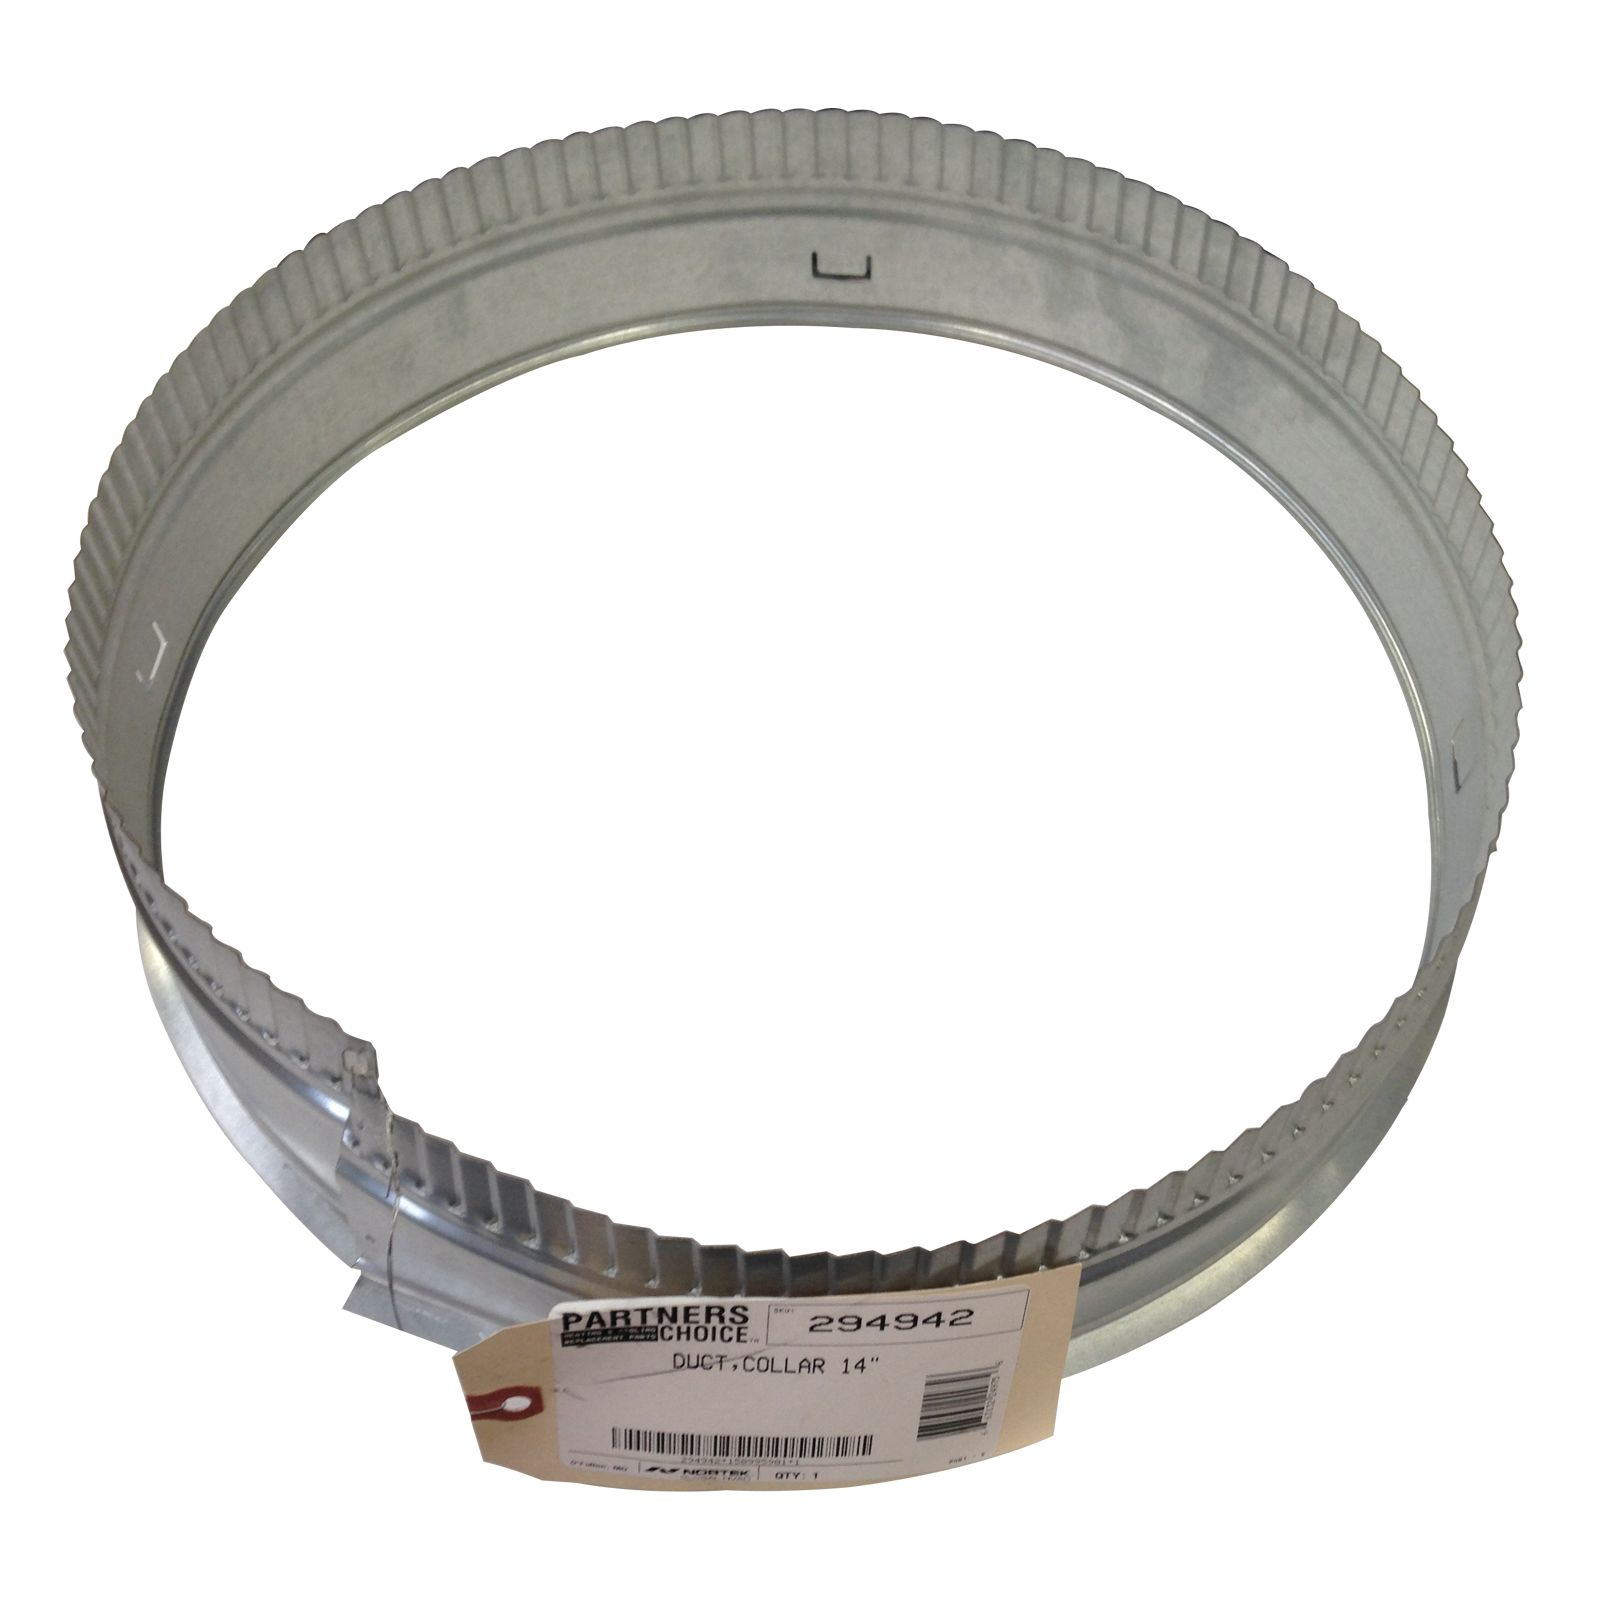 Nortek 294942 - Duct Collar, 14""